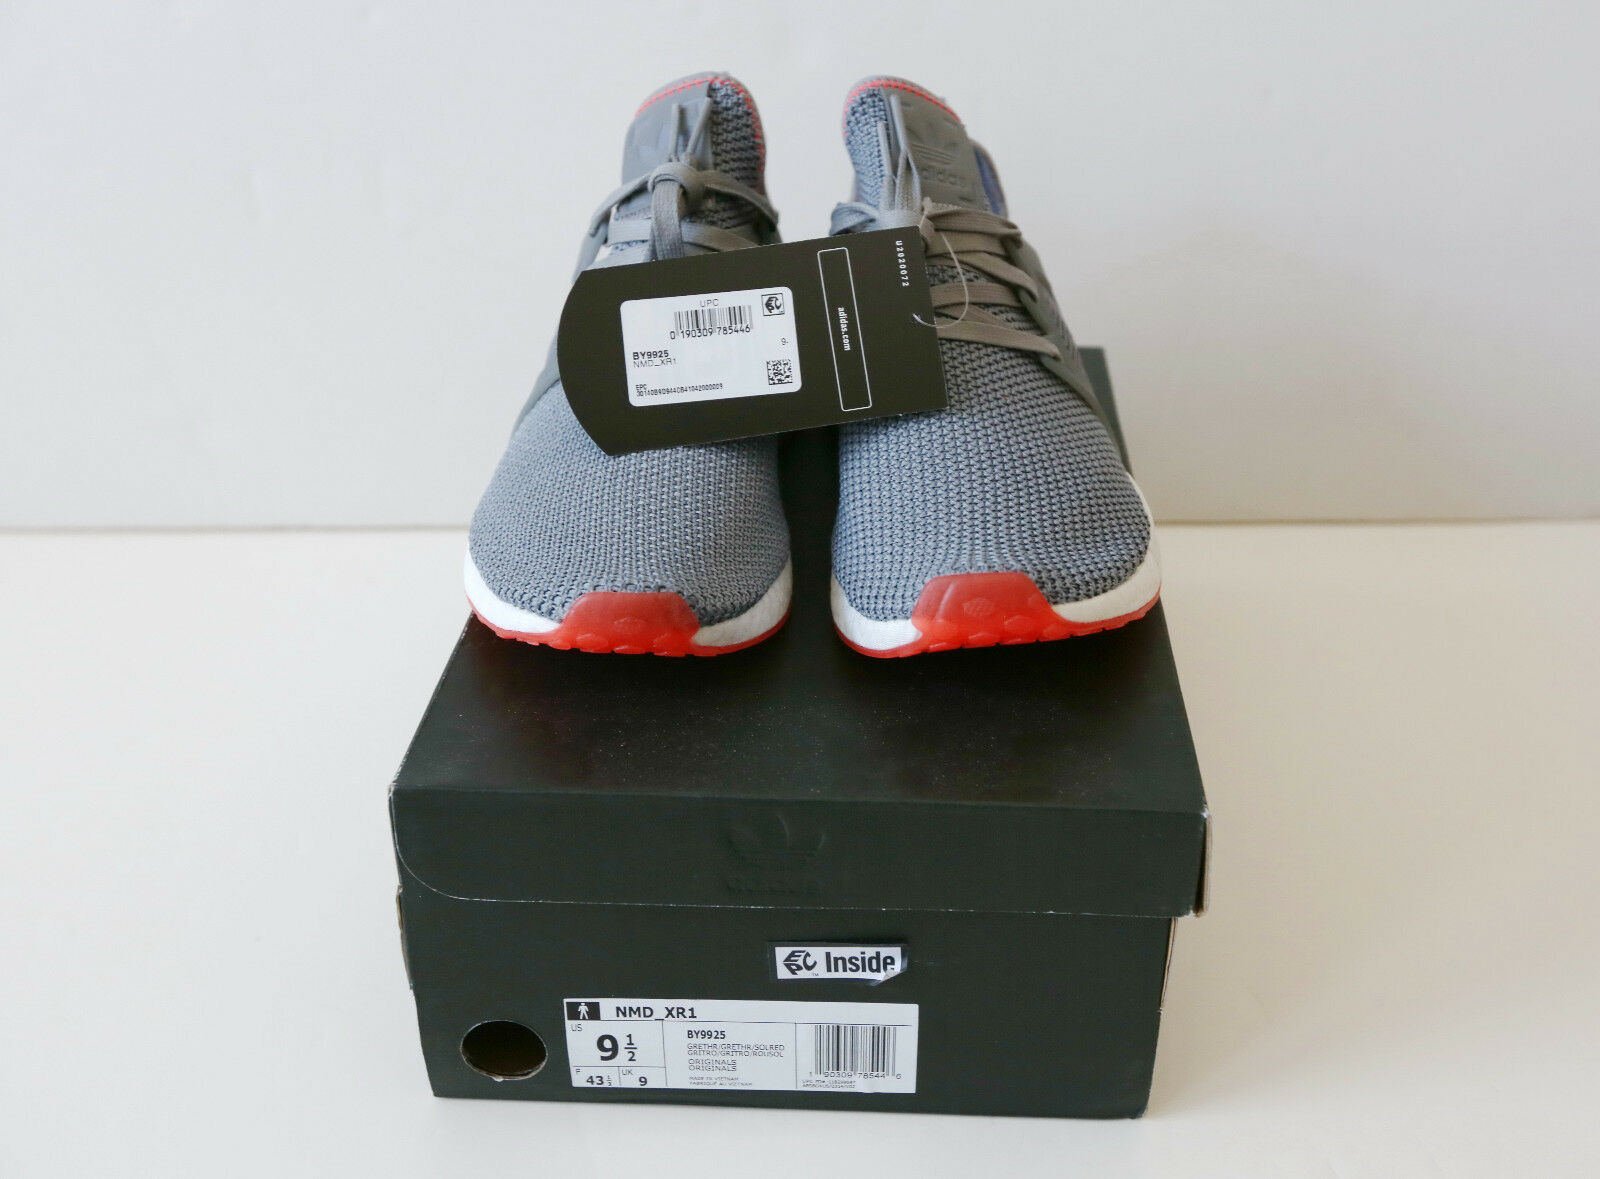 Adidas NMD_XR1 Grey/White/Orange BY9925 Shoes 9.5 *New*